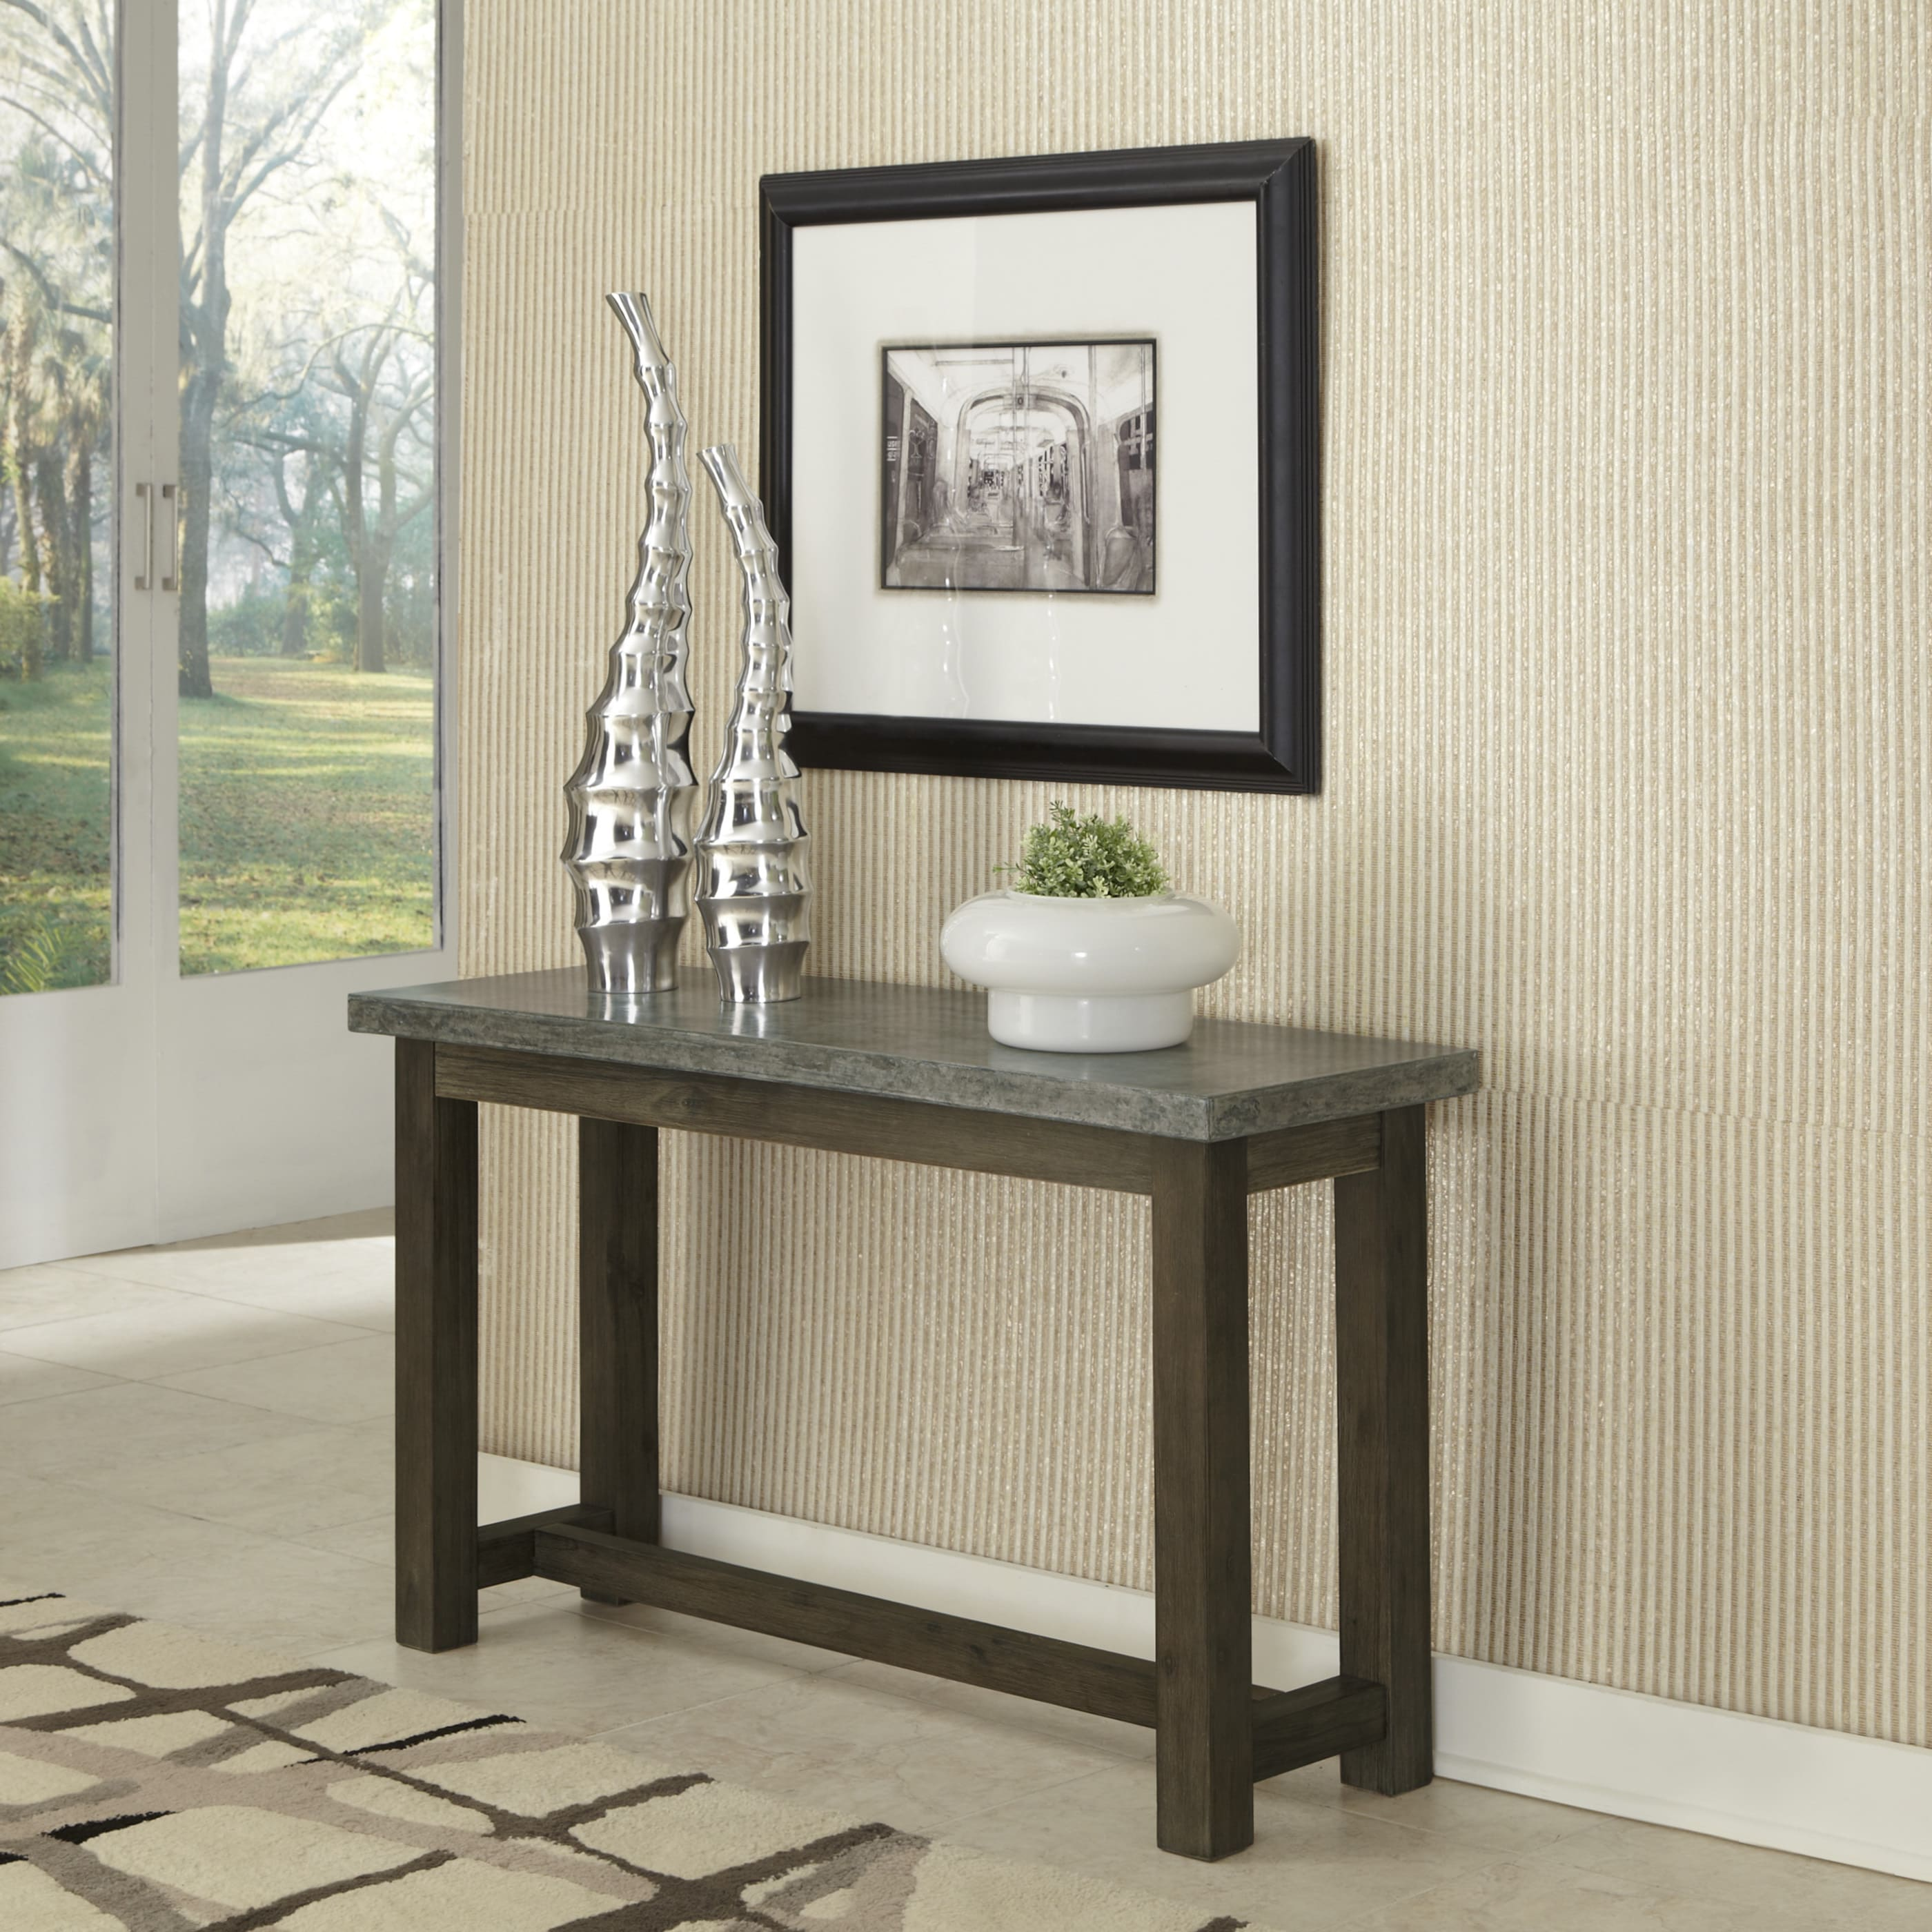 Shop Concrete Chic Console Table By Home Styles Free